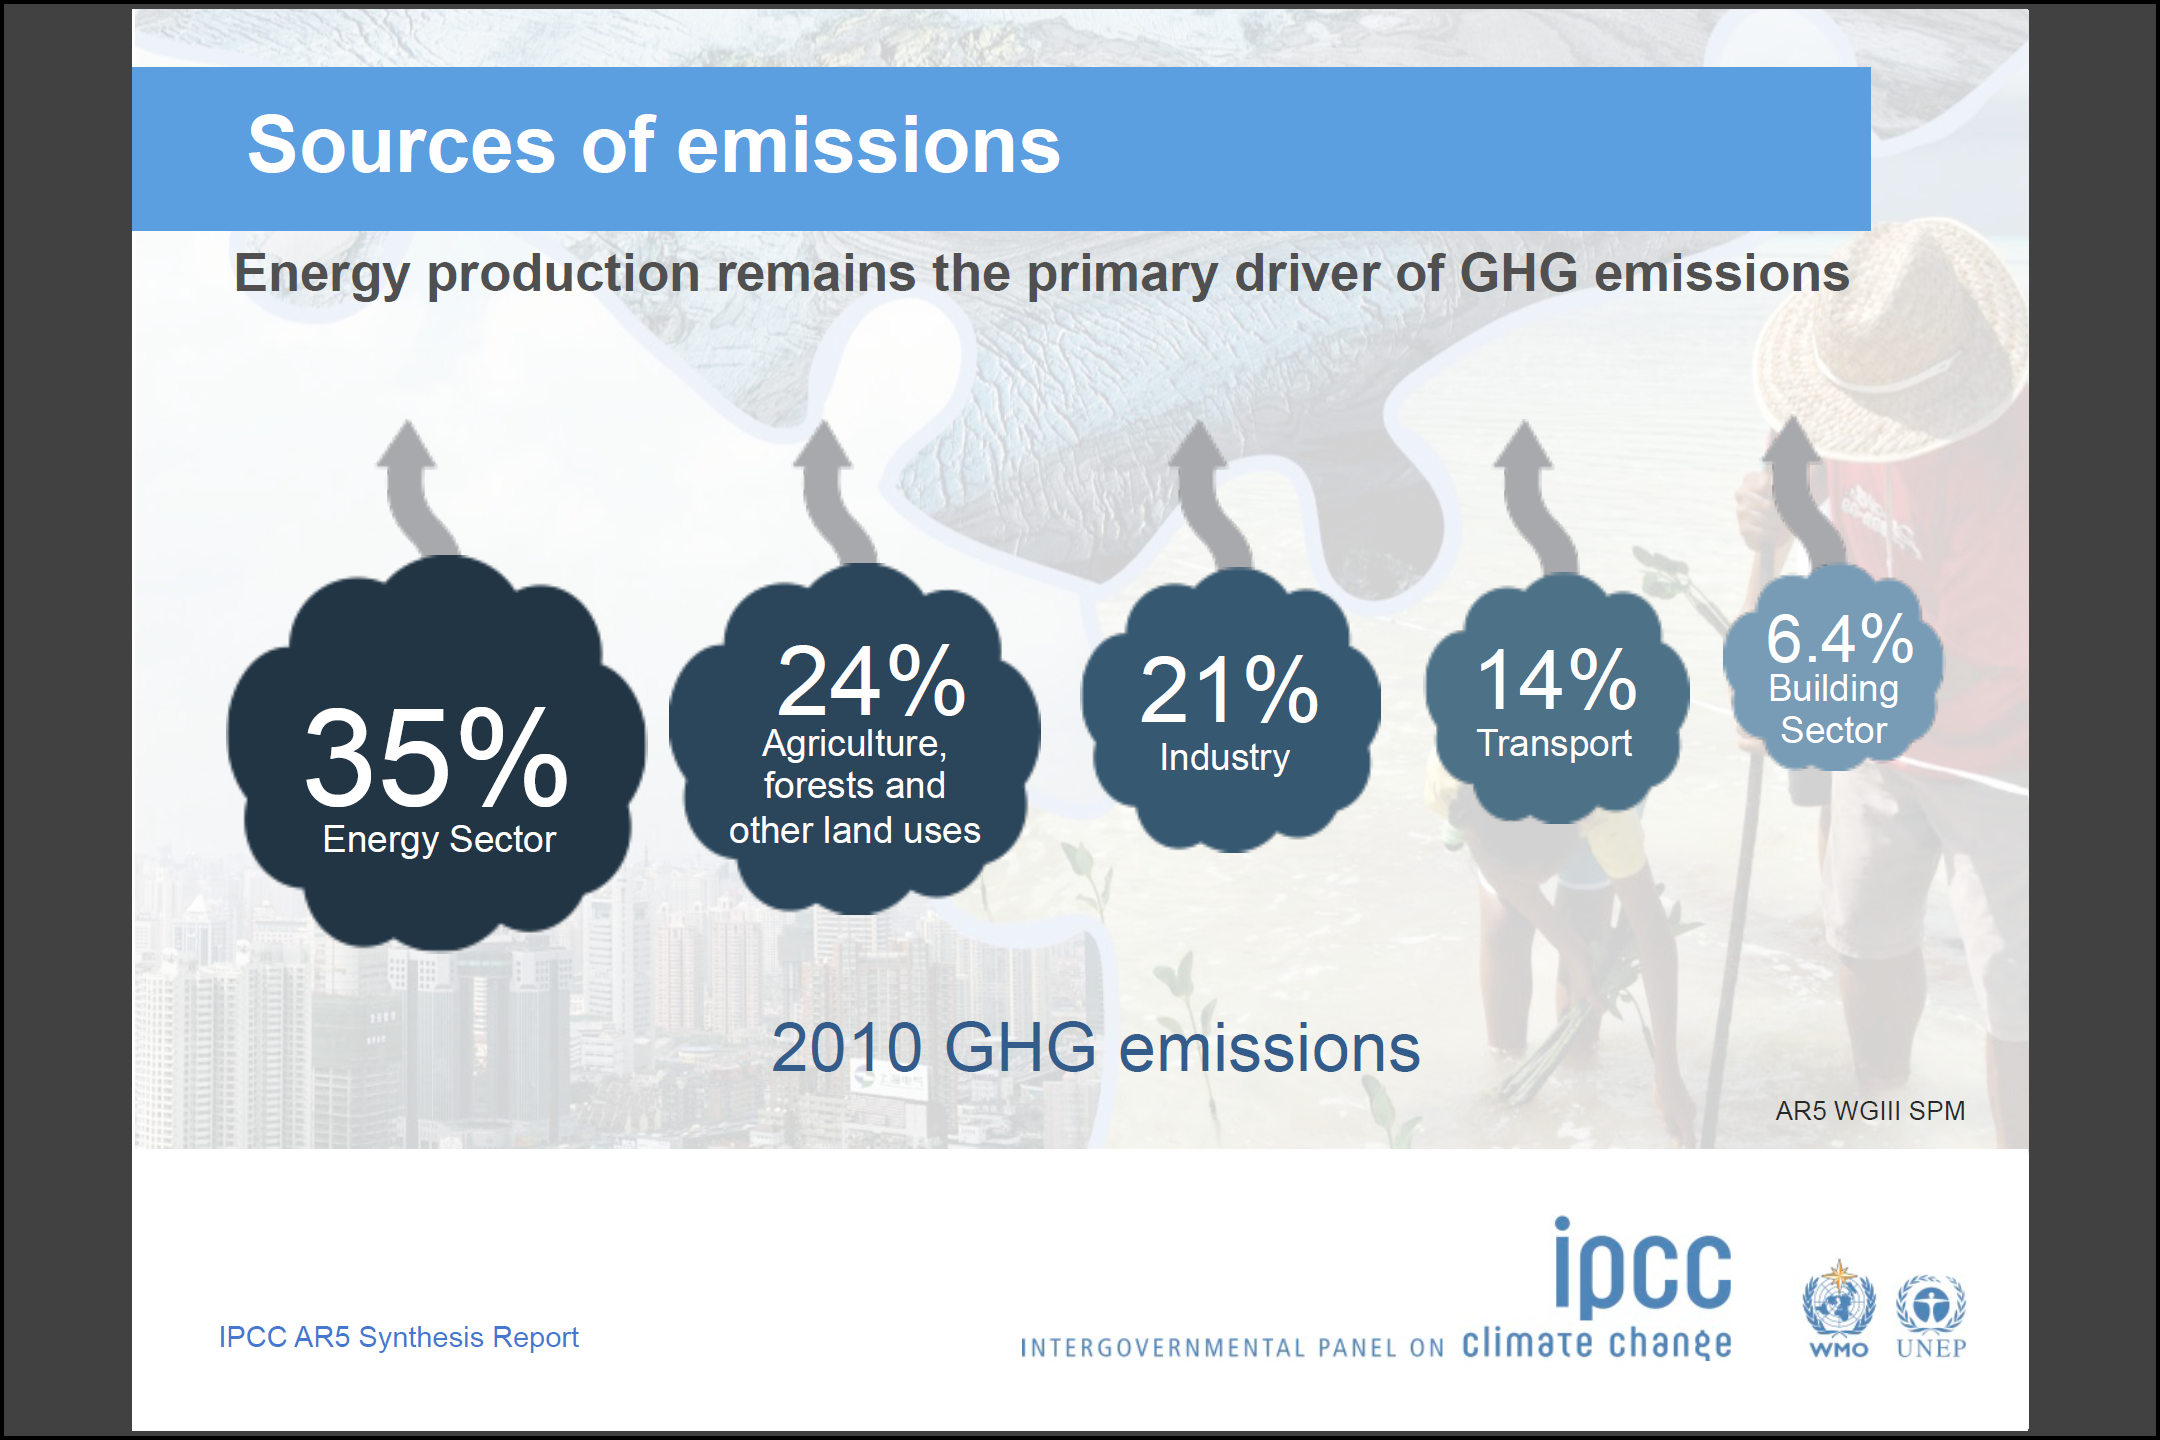 IPCC Sources of GHG